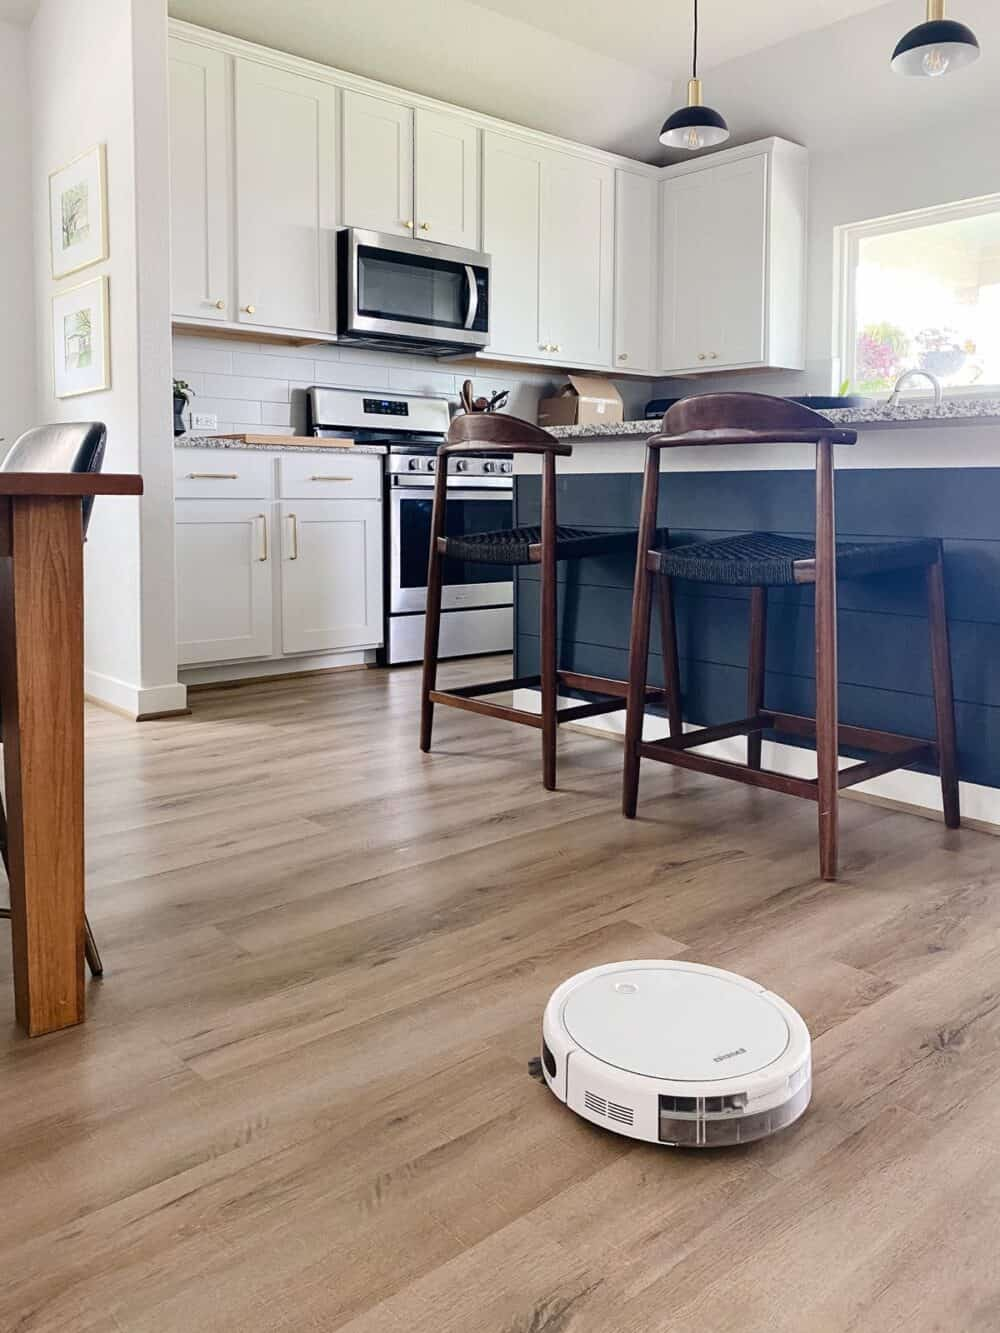 Bissell Spinwave robot cleaning a kitchen